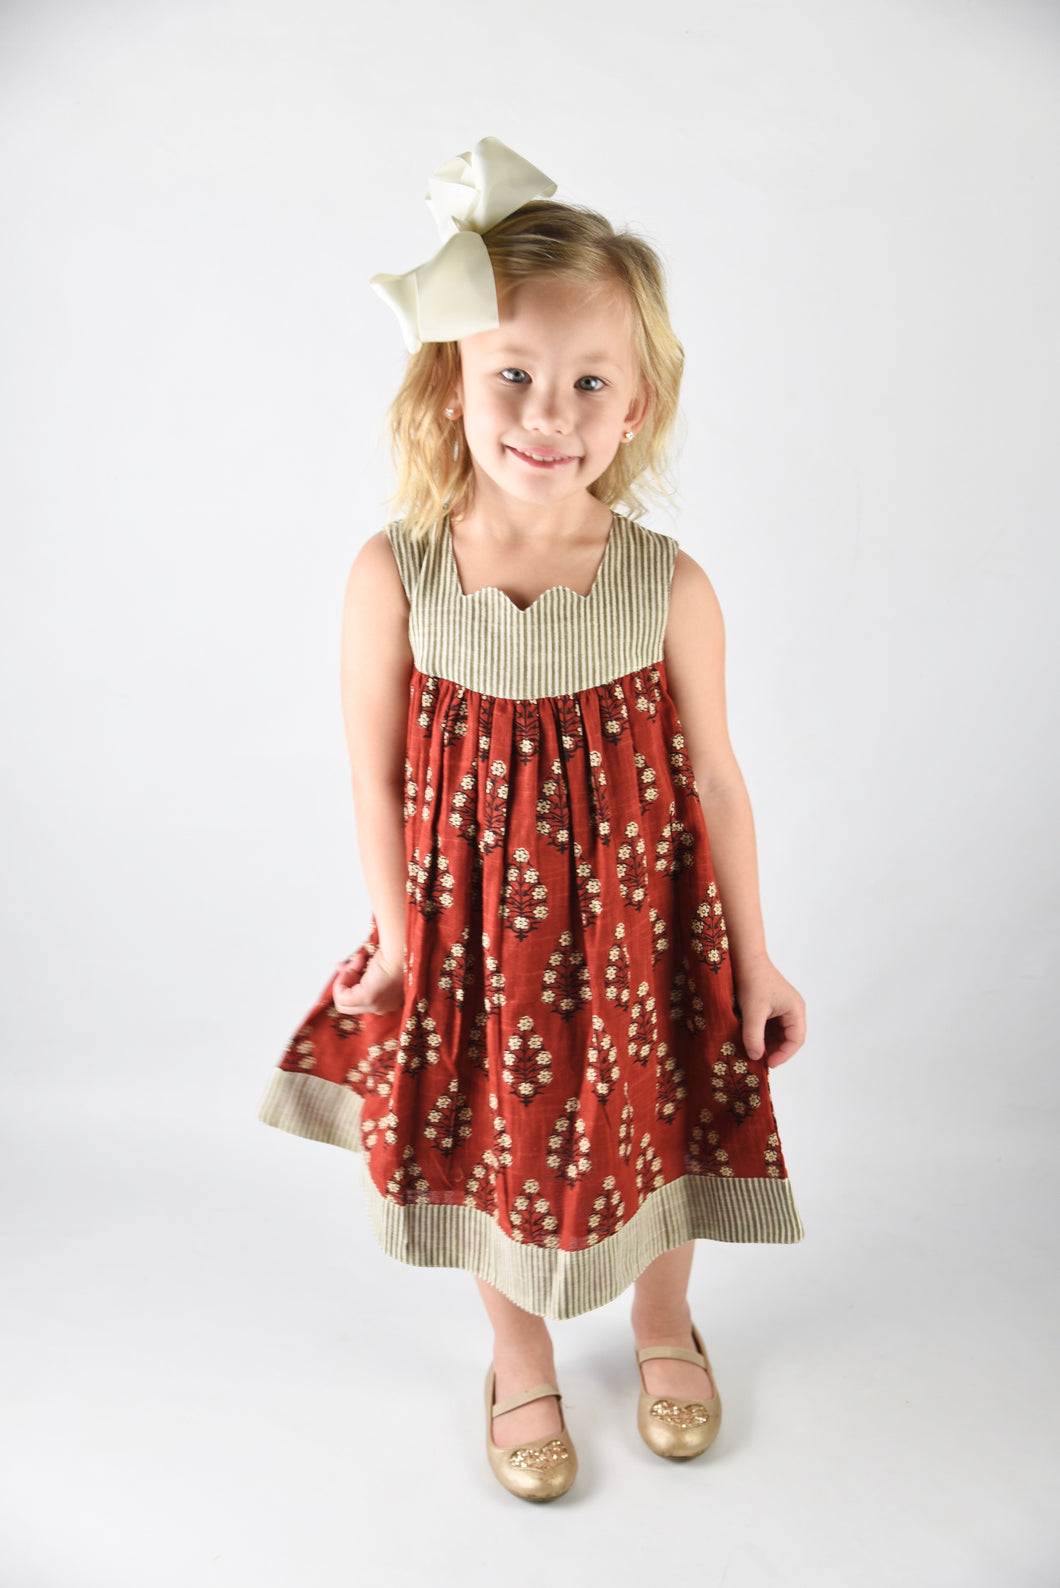 Maroon Sleeveless Dress with Pin Stripe Detail - Kids Wholesale Boutique Clothing, Dress - Girls Dresses, Yo Baby Wholesale - Yo Baby